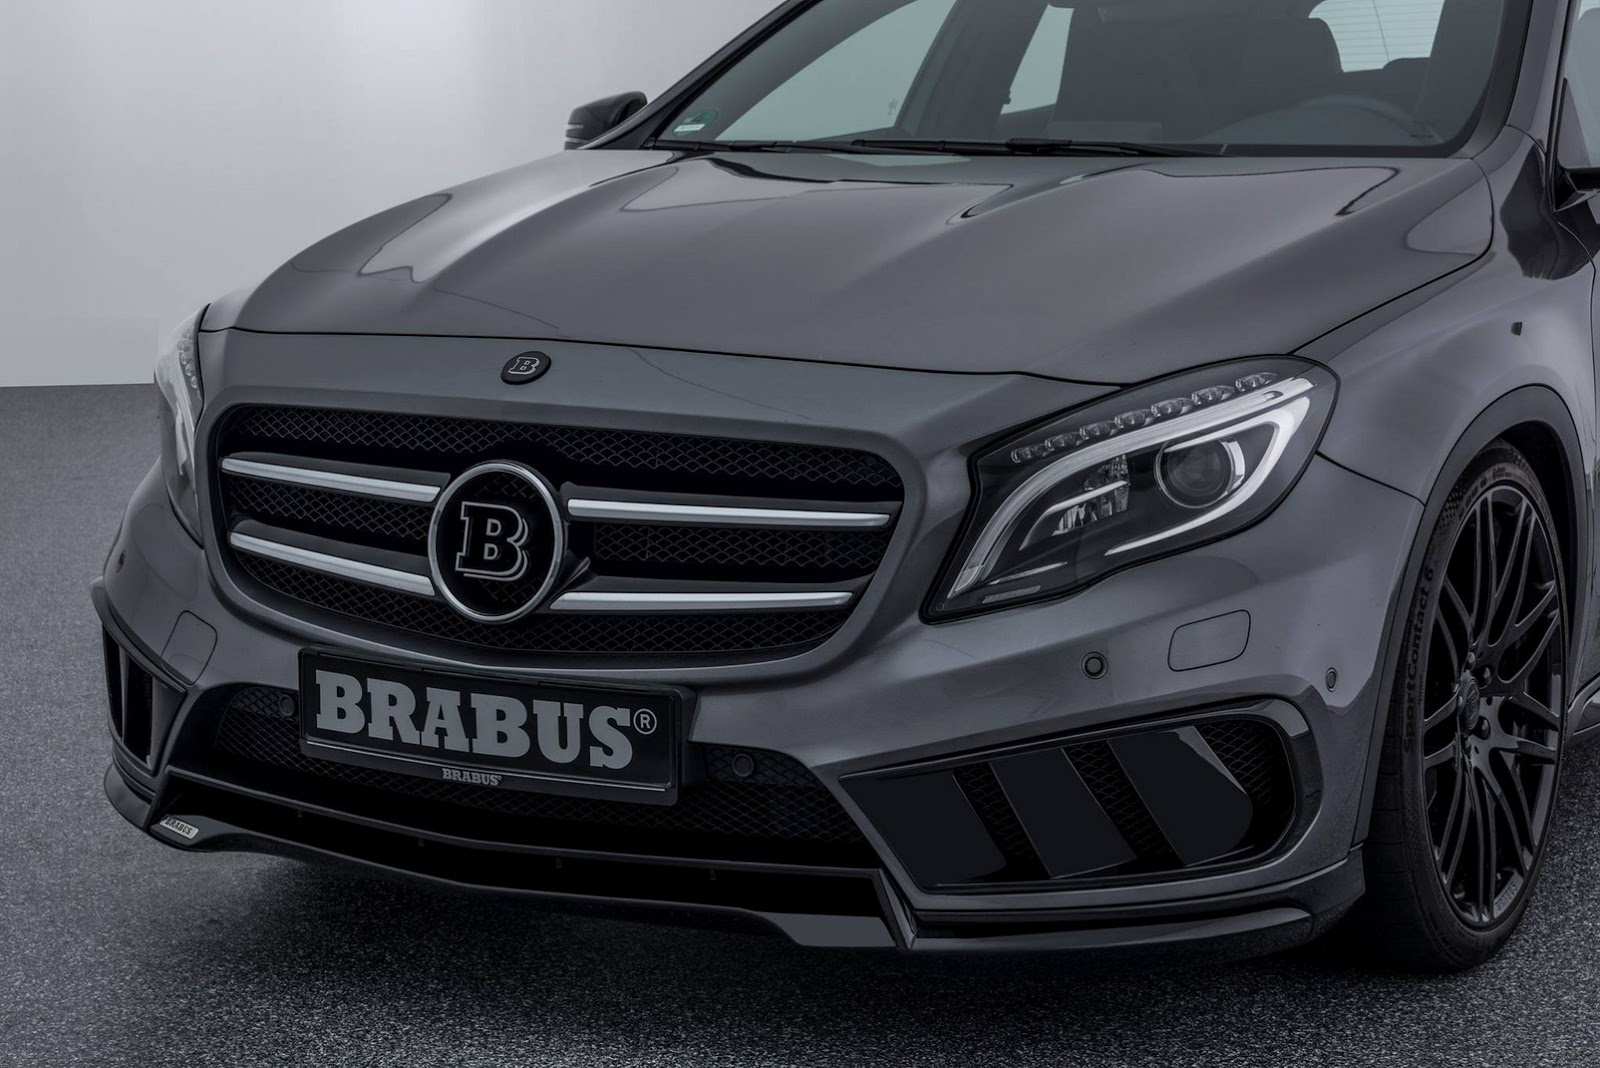 brabus gla 220 cdi. Black Bedroom Furniture Sets. Home Design Ideas